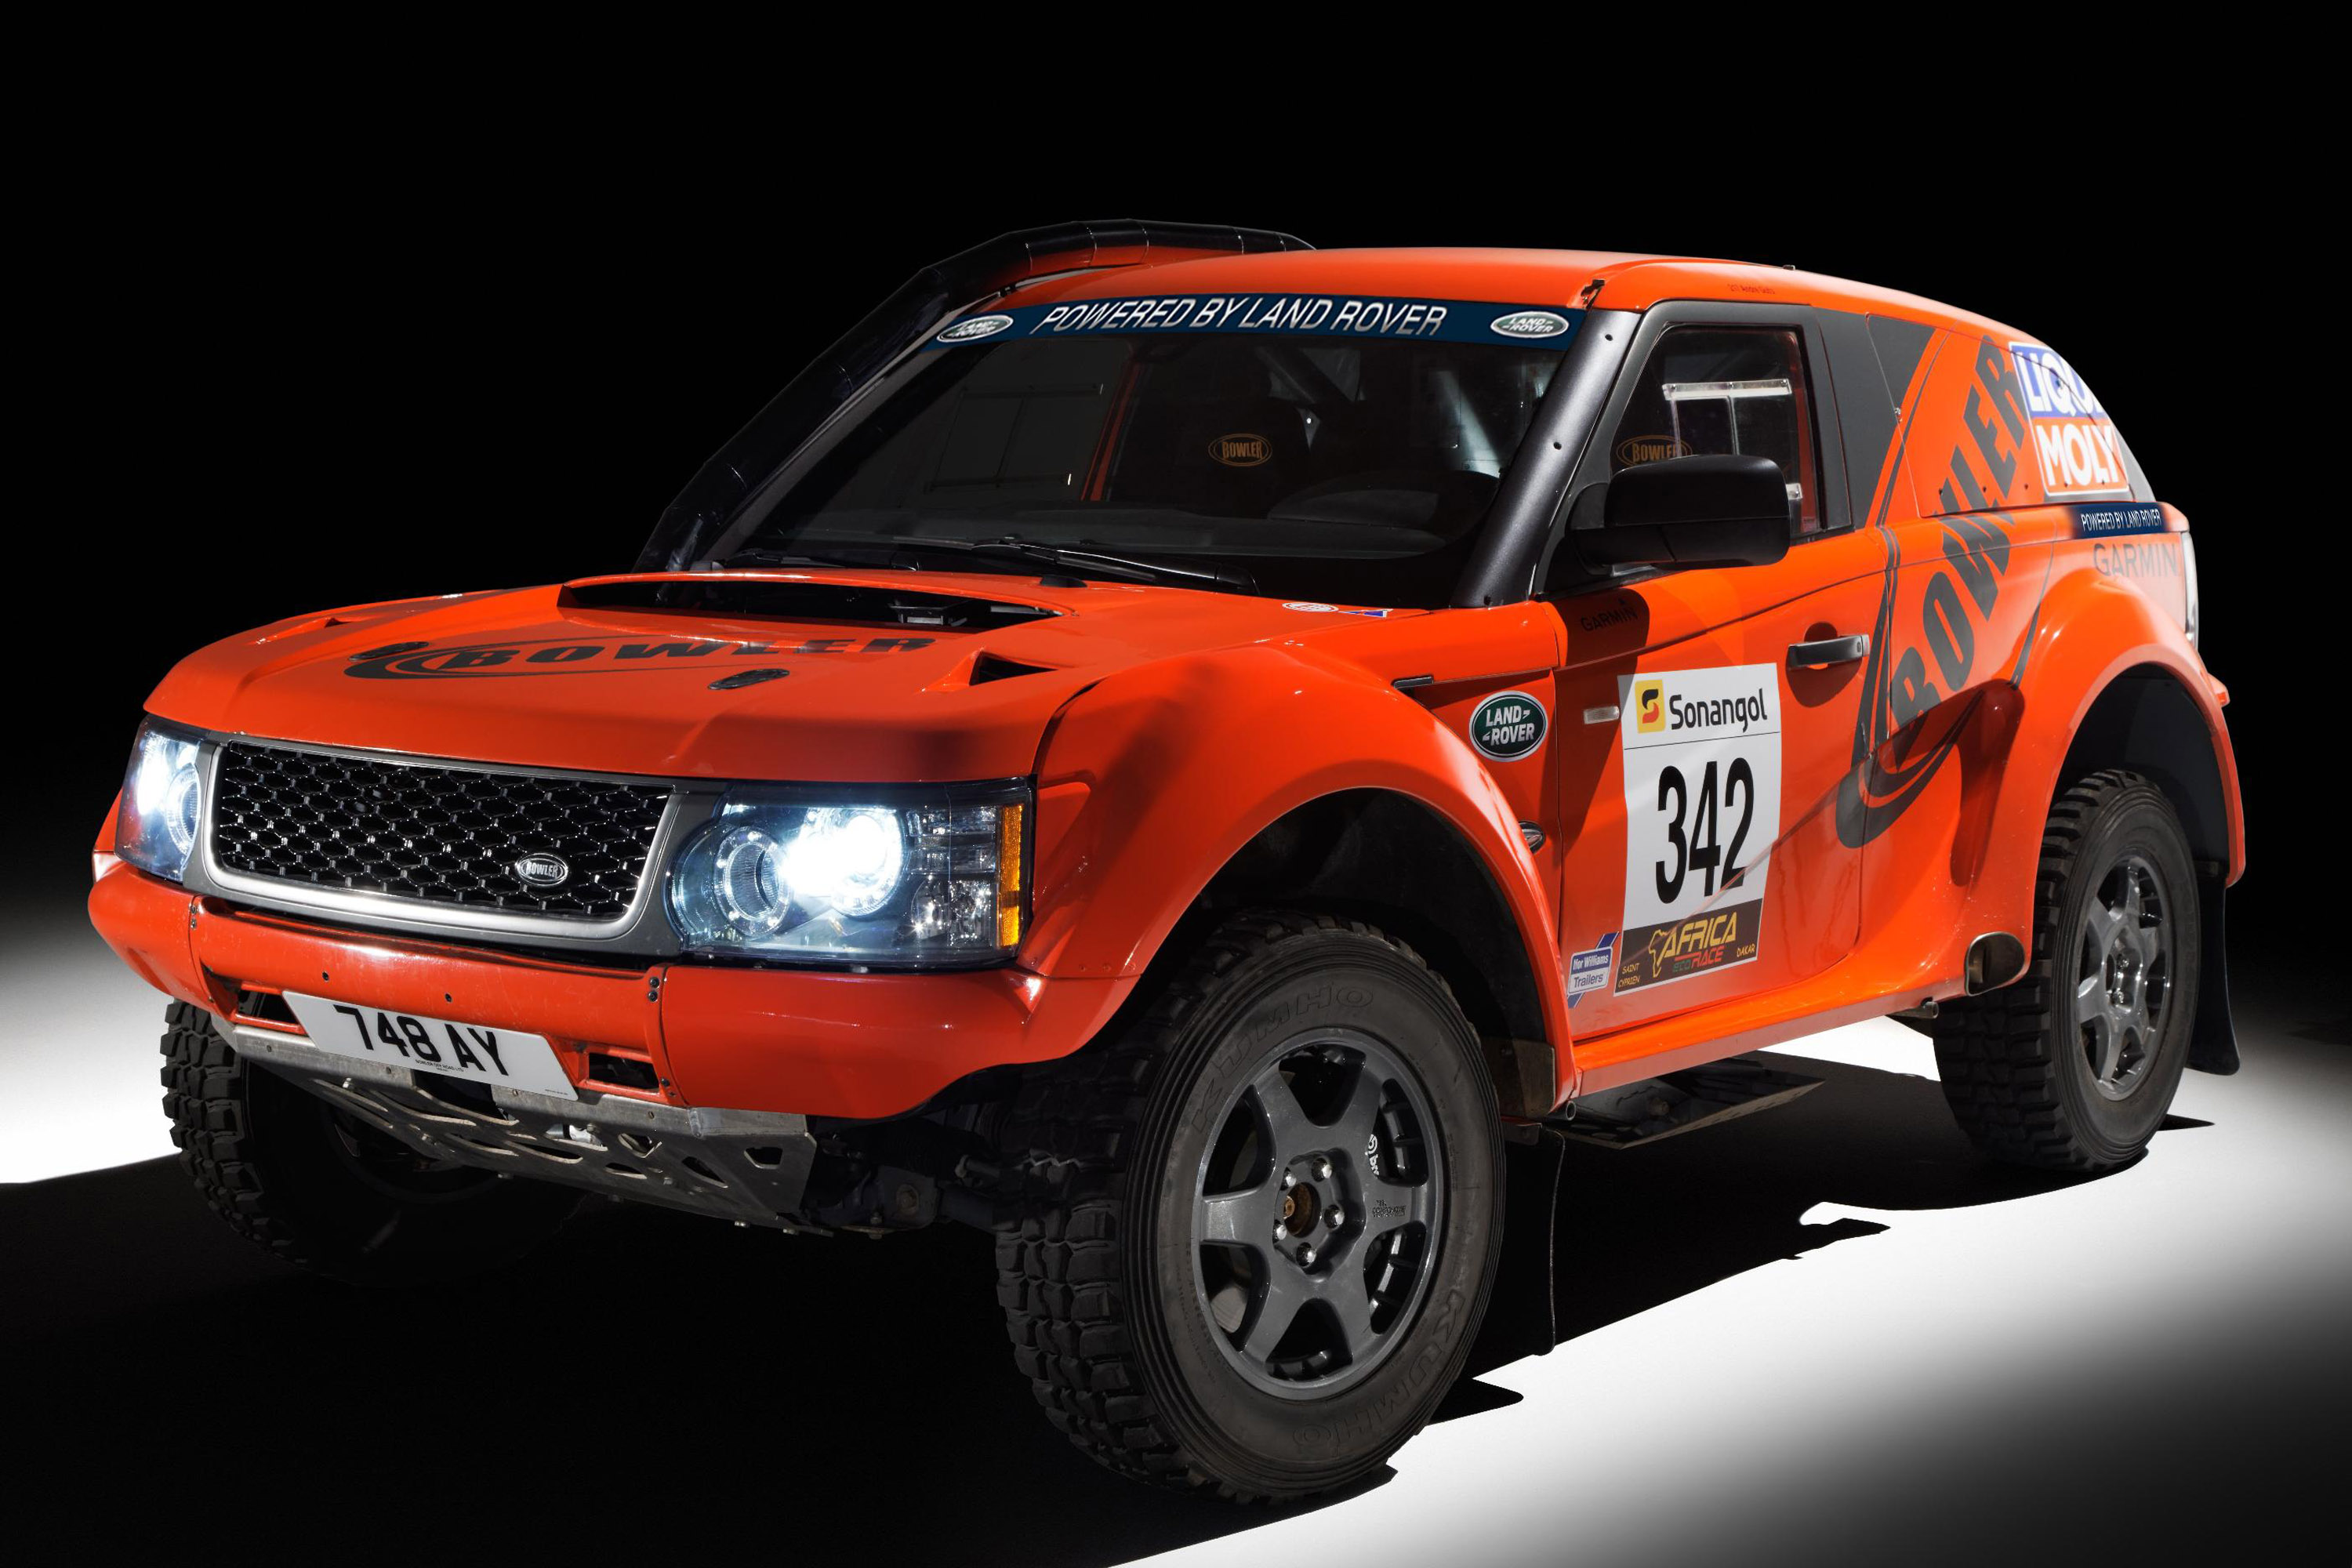 Bowler EXR Rally Car - Picture 70405